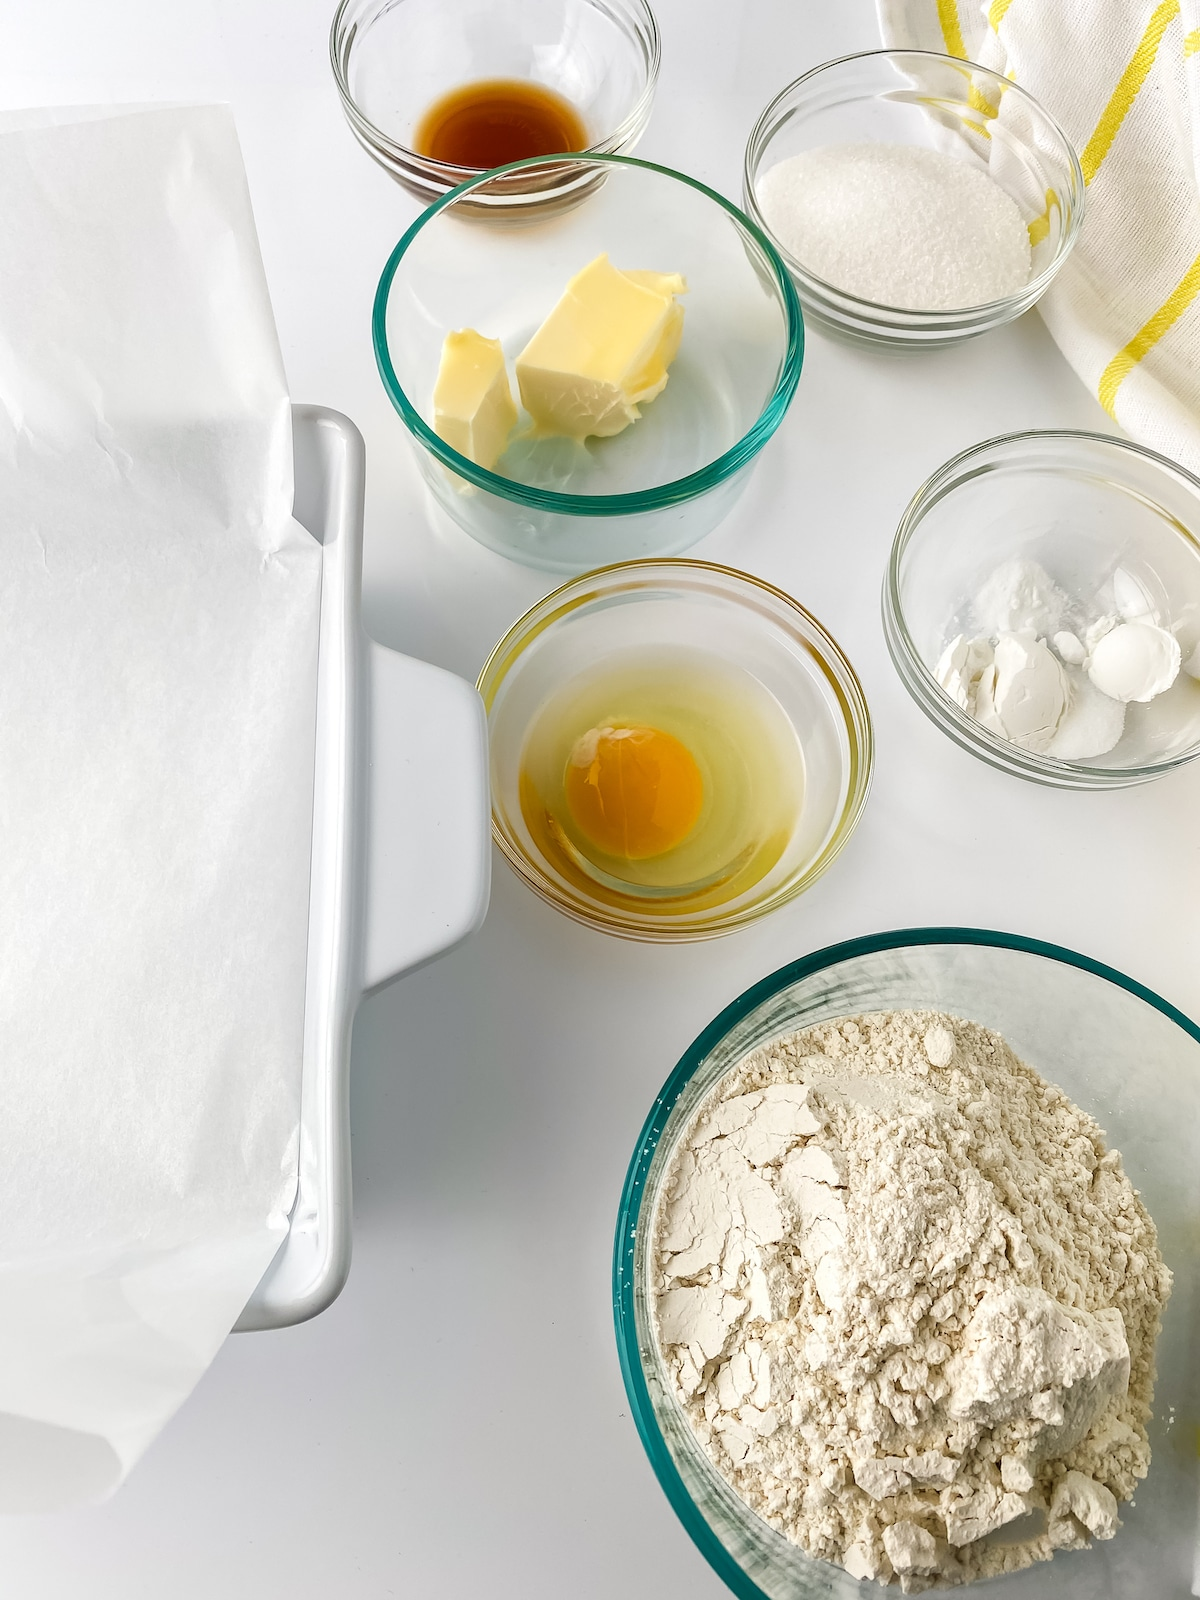 Ingredients for sugar cookie bars in glass bowls on white table